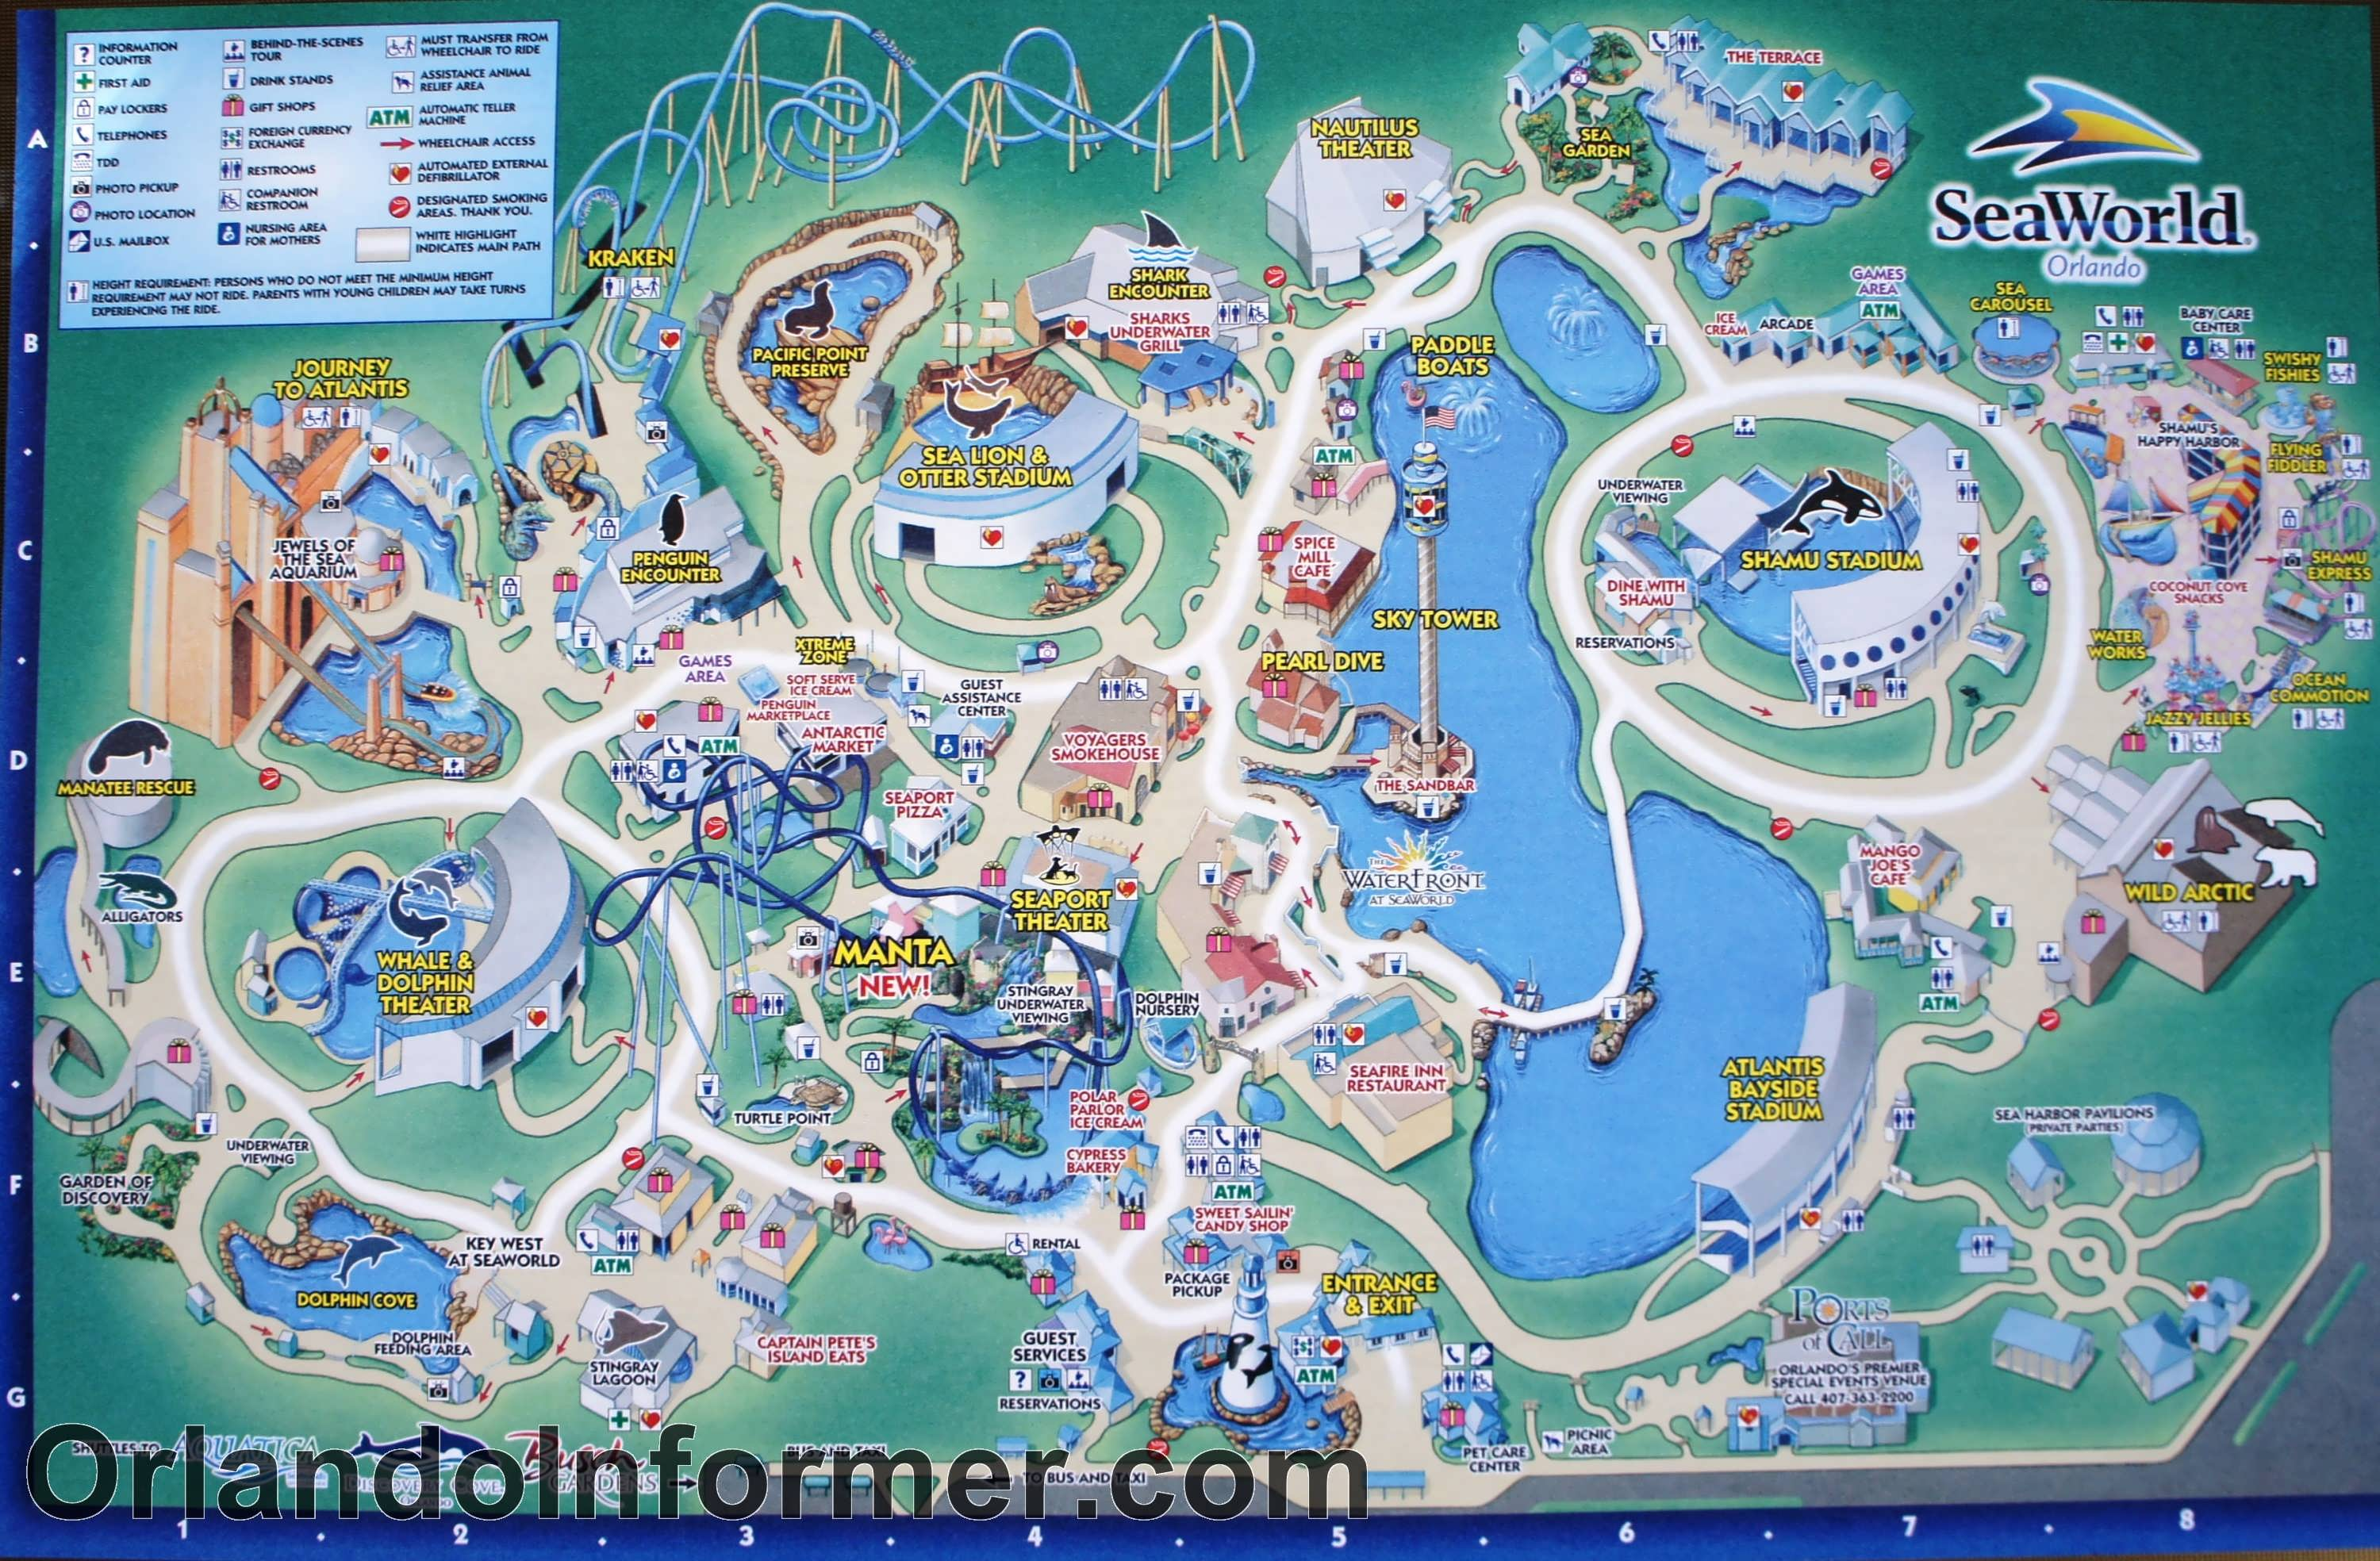 Scenes from SeaWorld Orlando - photo gallery, HD 1080p video, park map